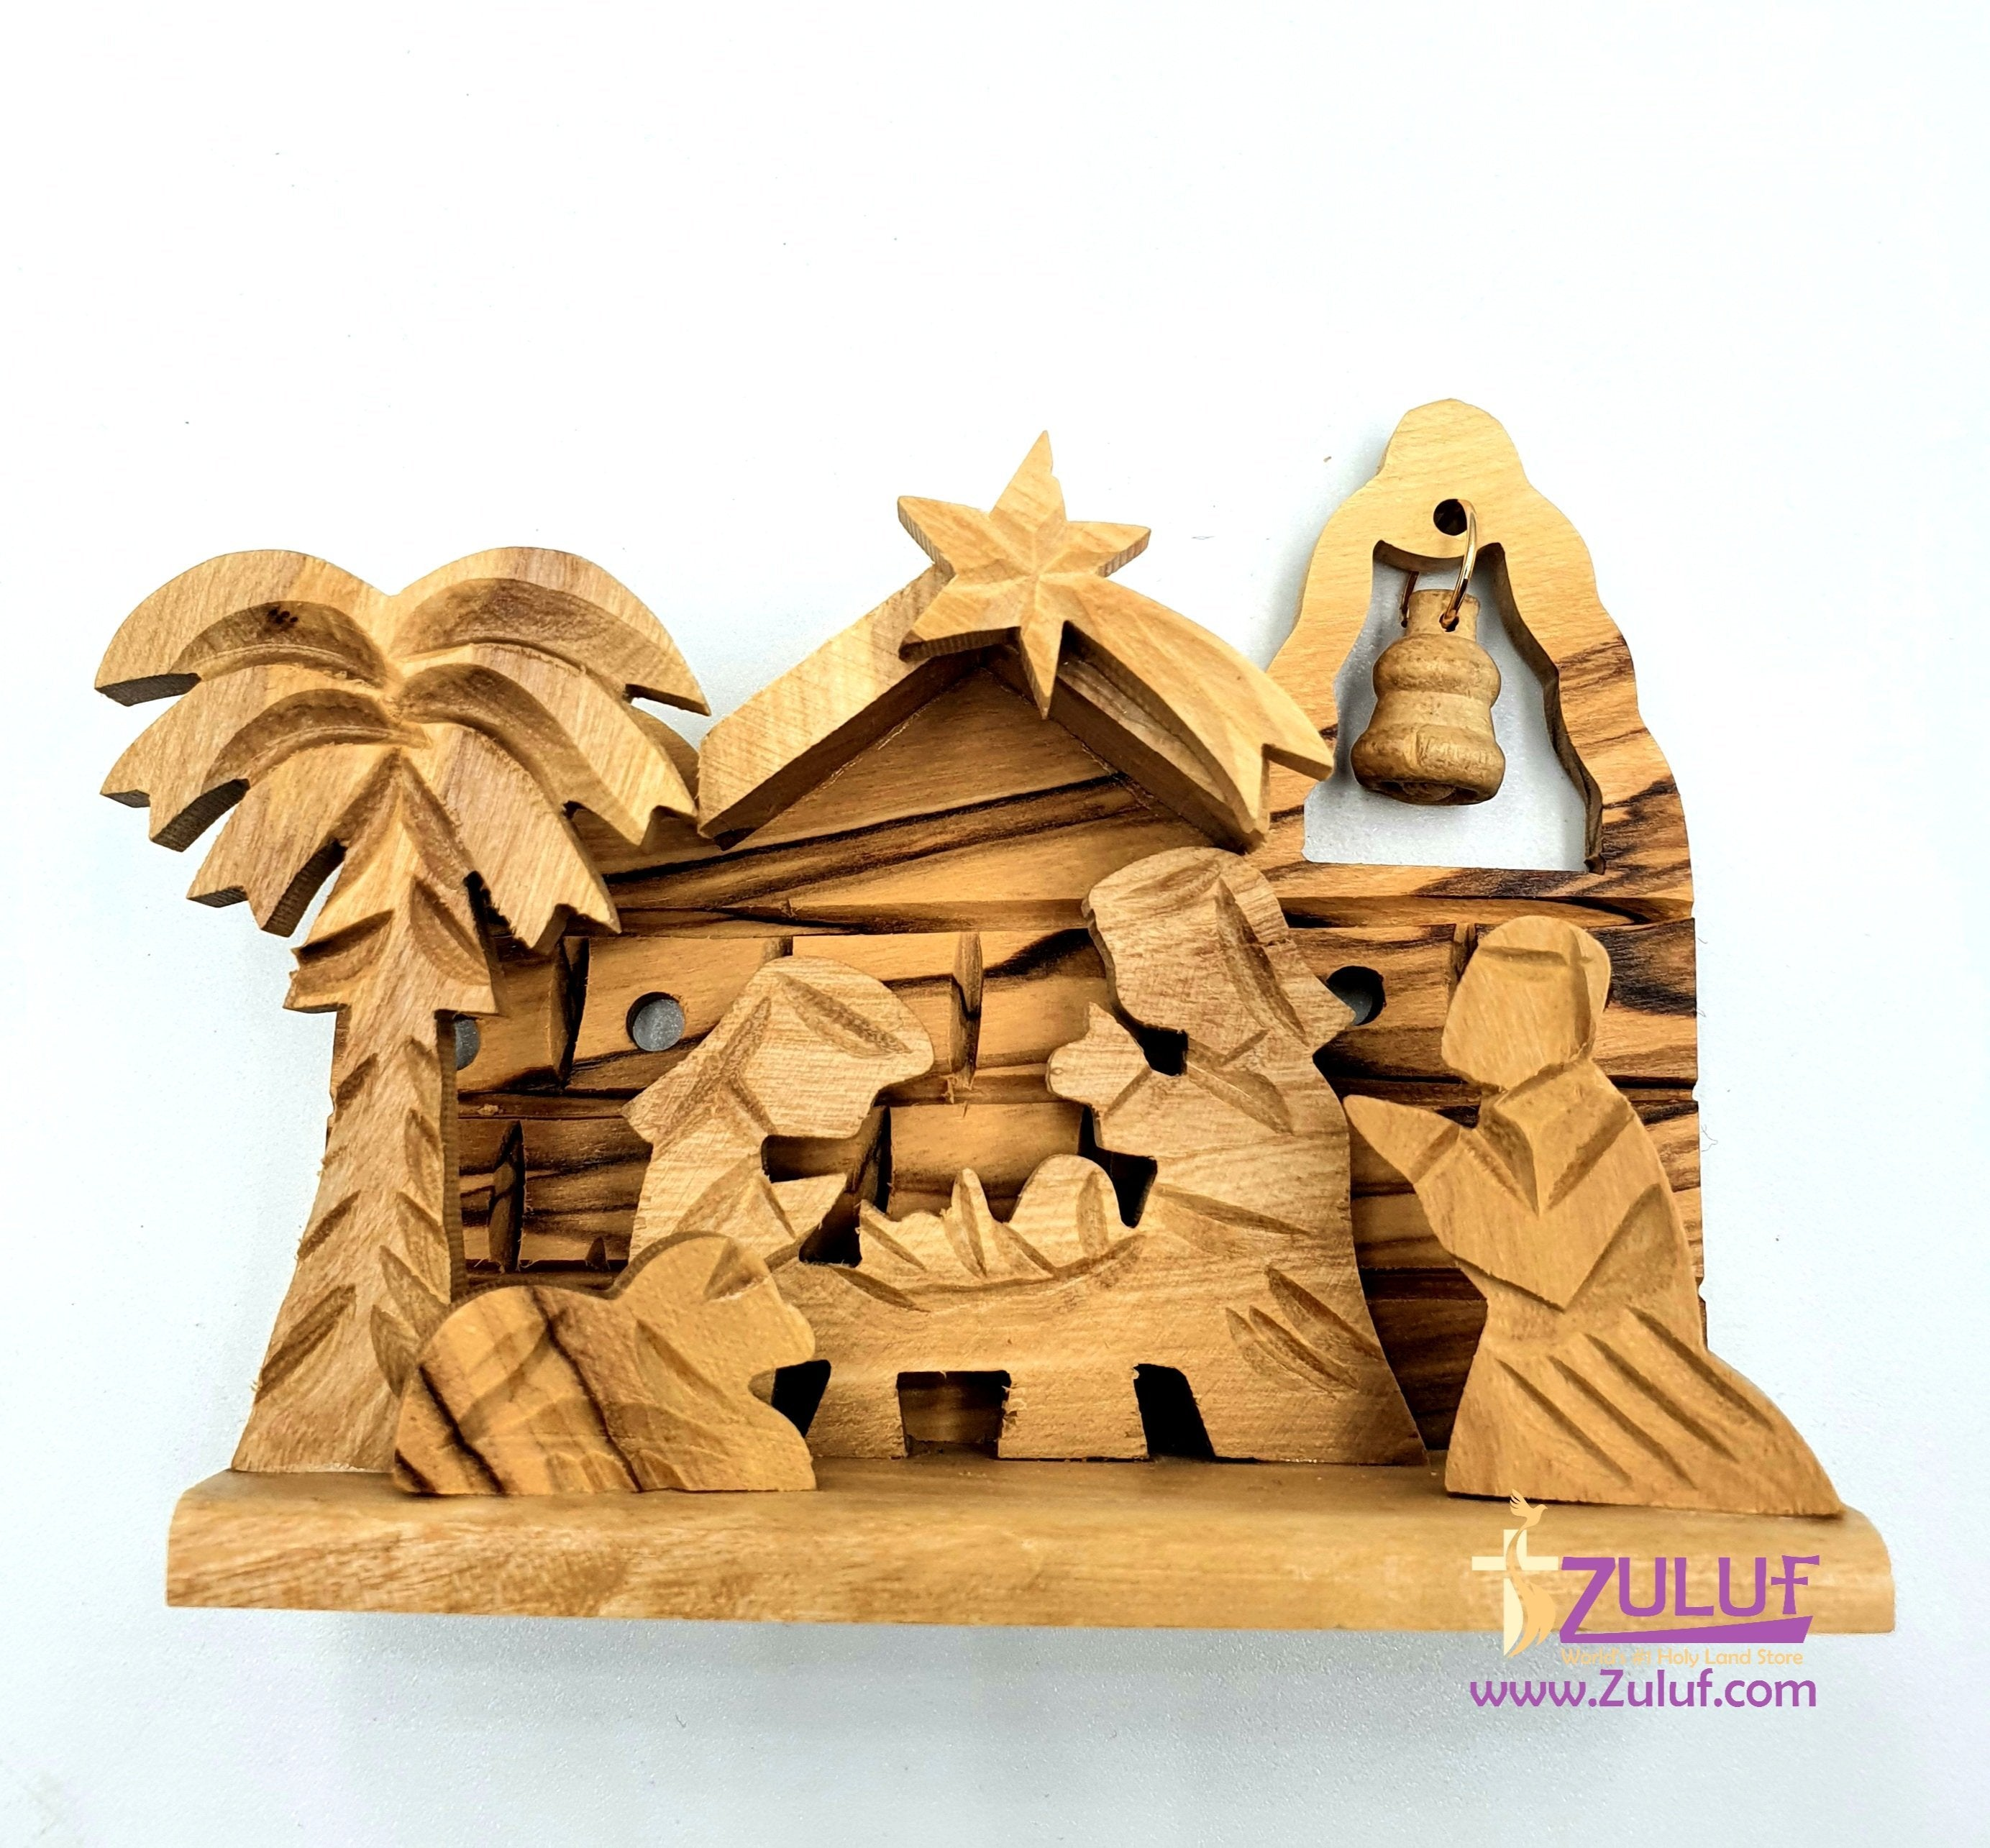 Olivewood Olive Wood Bethlehem Nativity 9cm Scene Set Holy land NAT067 - Zuluf